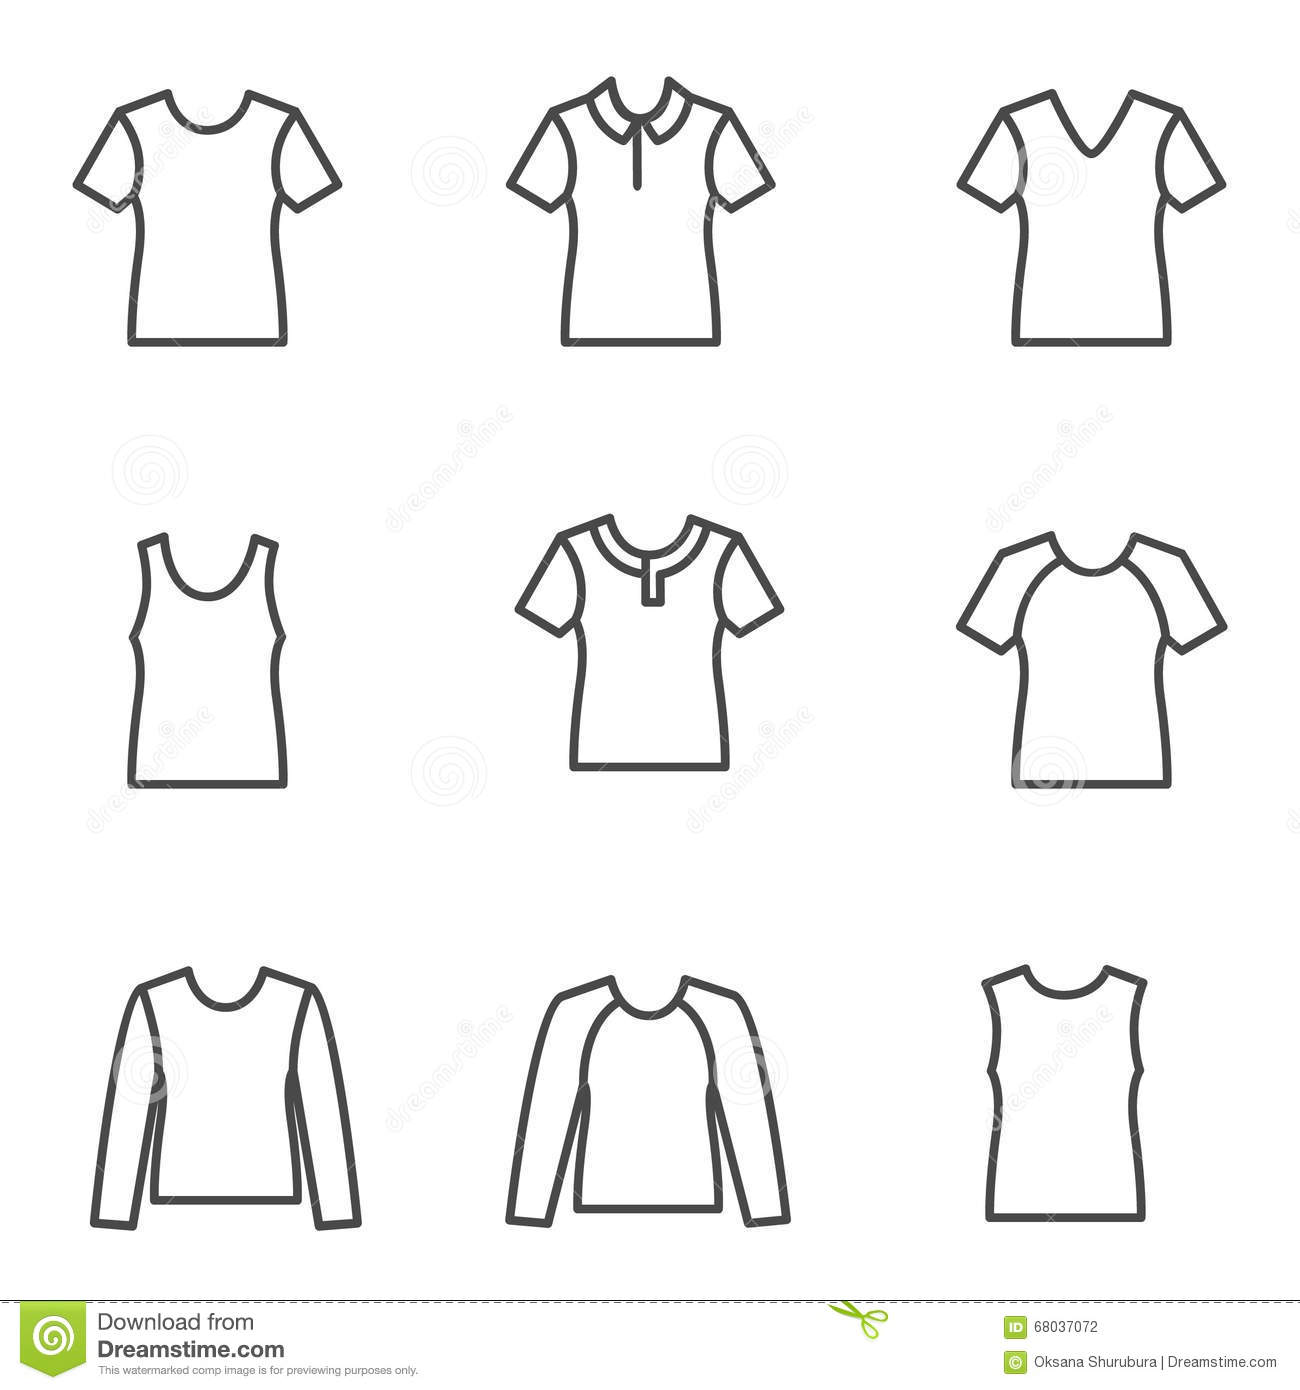 Construye las tablas de multiplicar further Stock Illustration Different Types Mans T Shirts As Line Icons Set Vector Image68037072 moreover Plan Maison De Ville further Standing Persons Salutation Talking One To Each Other 46833 besides Royalty Free Stock Image Grass Tree Vector Silhouette Image6257236. on garden plans